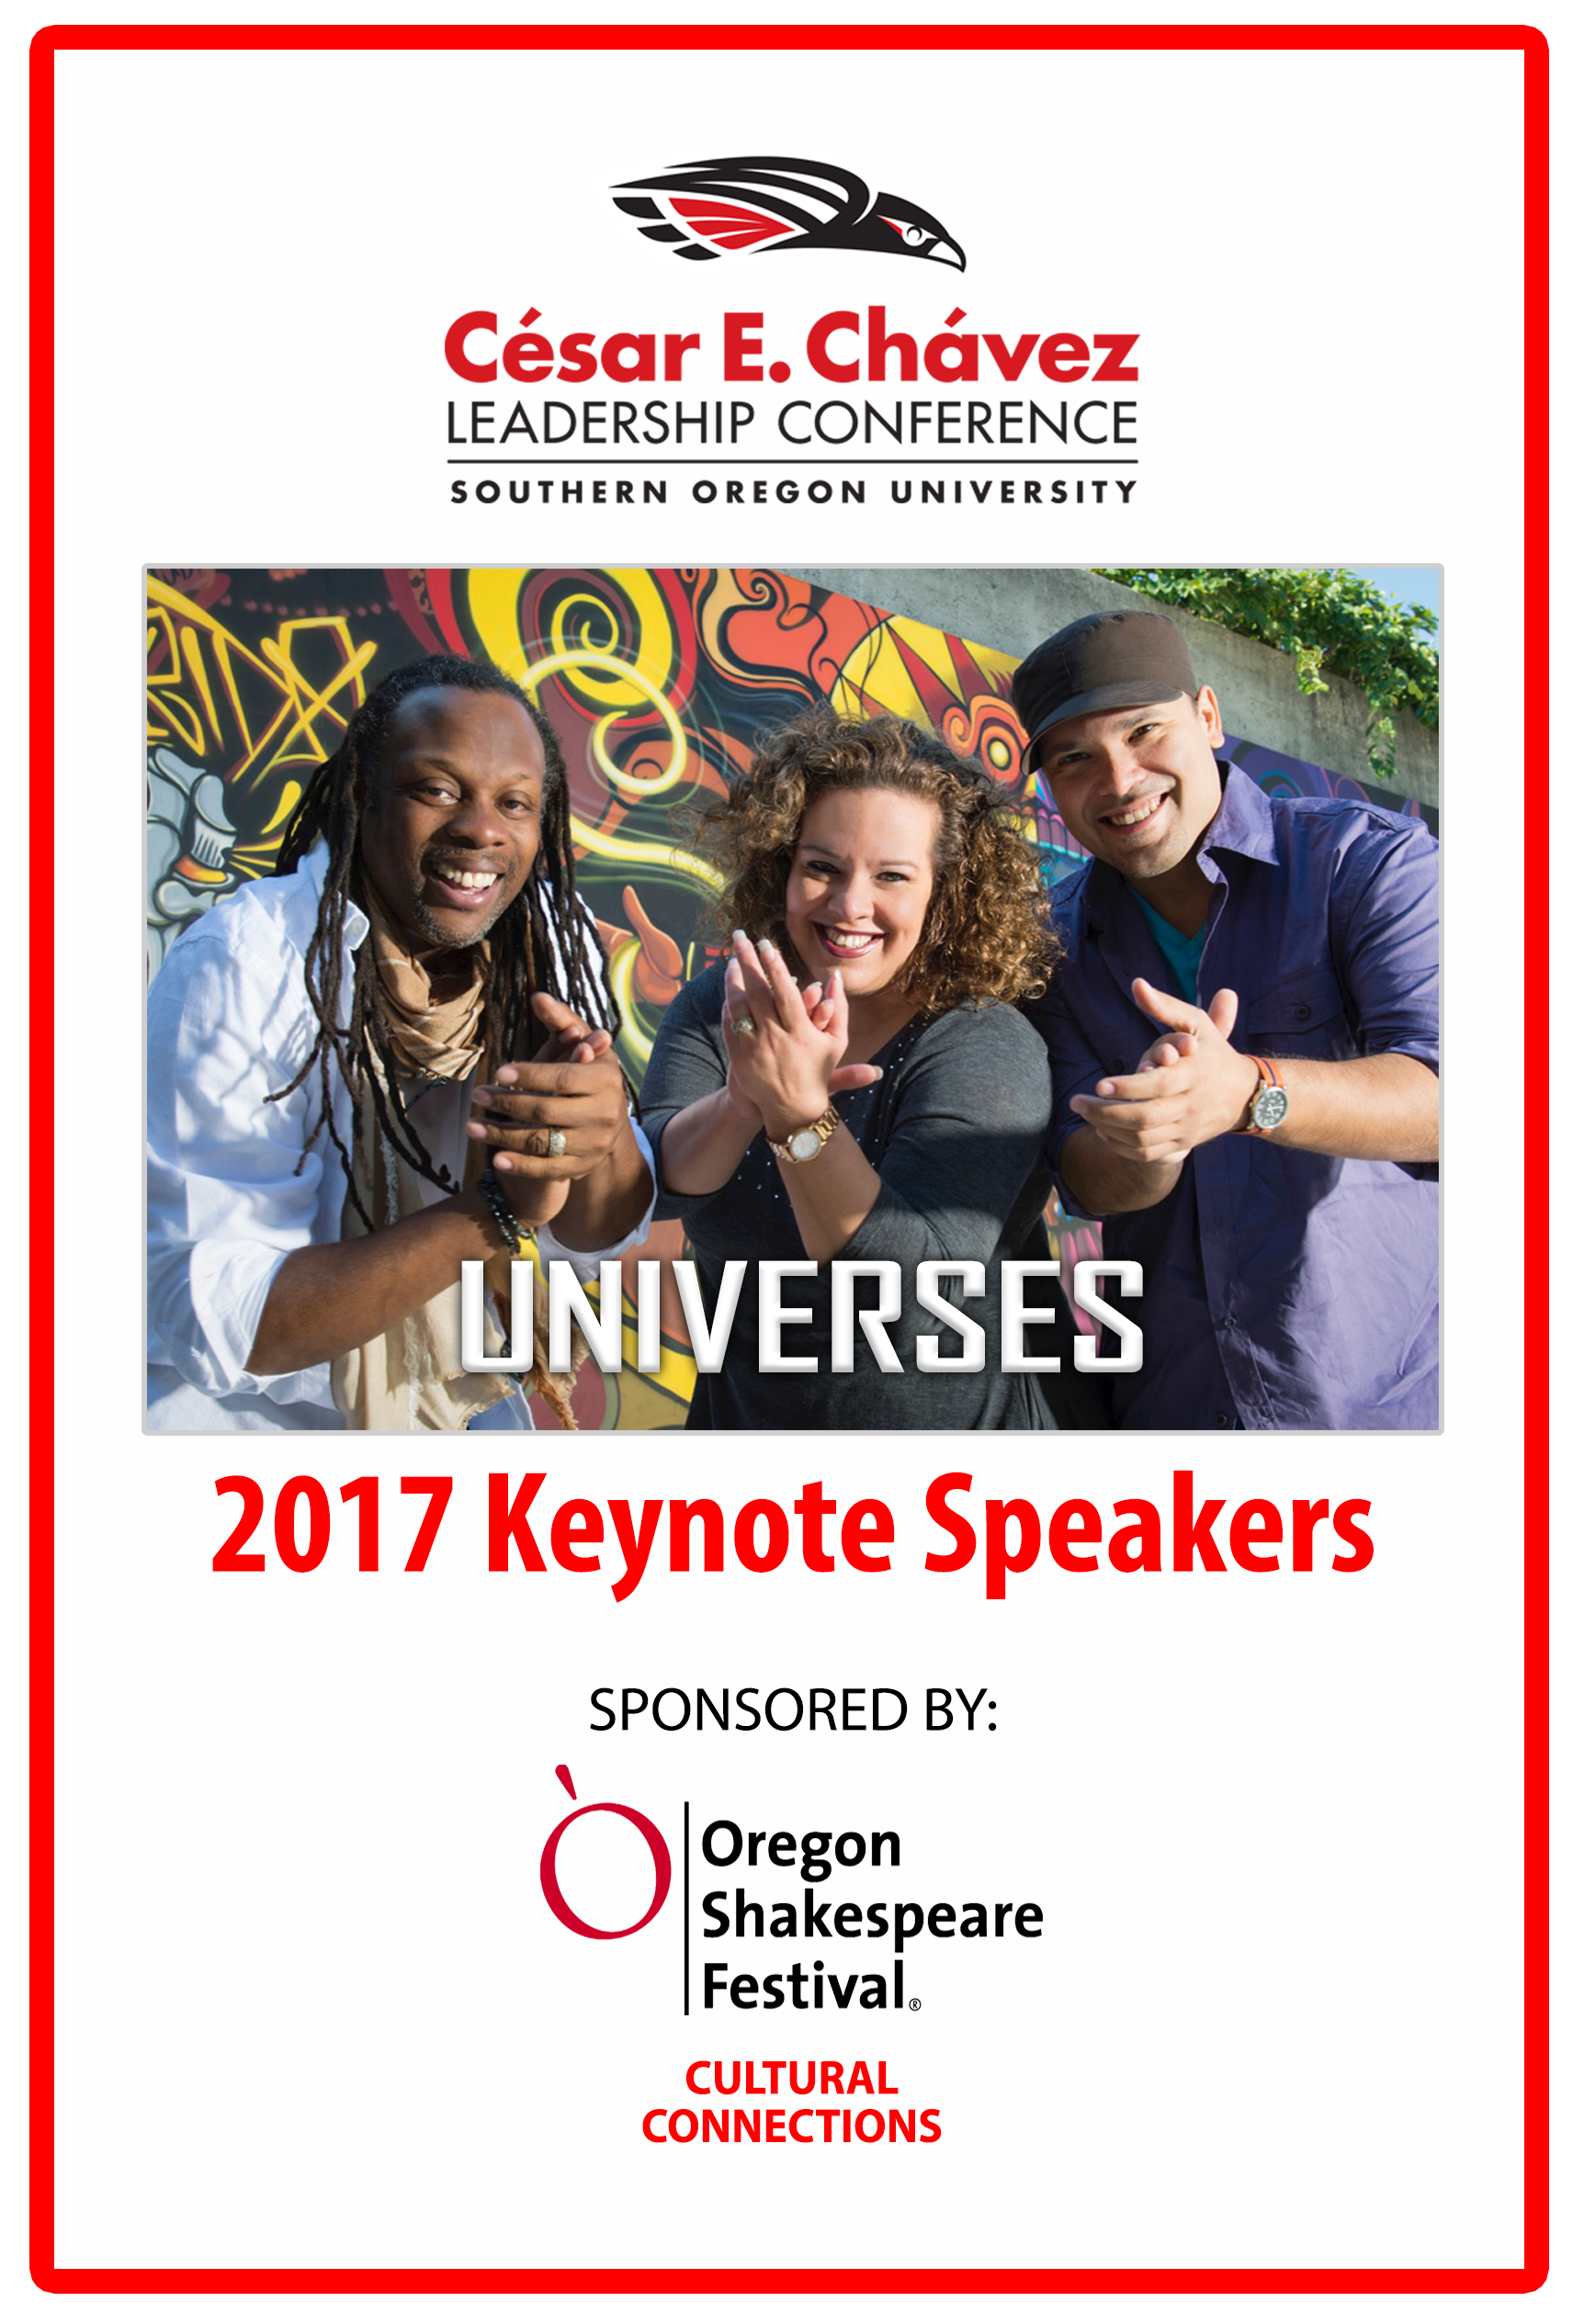 2017 Keynote Speakers